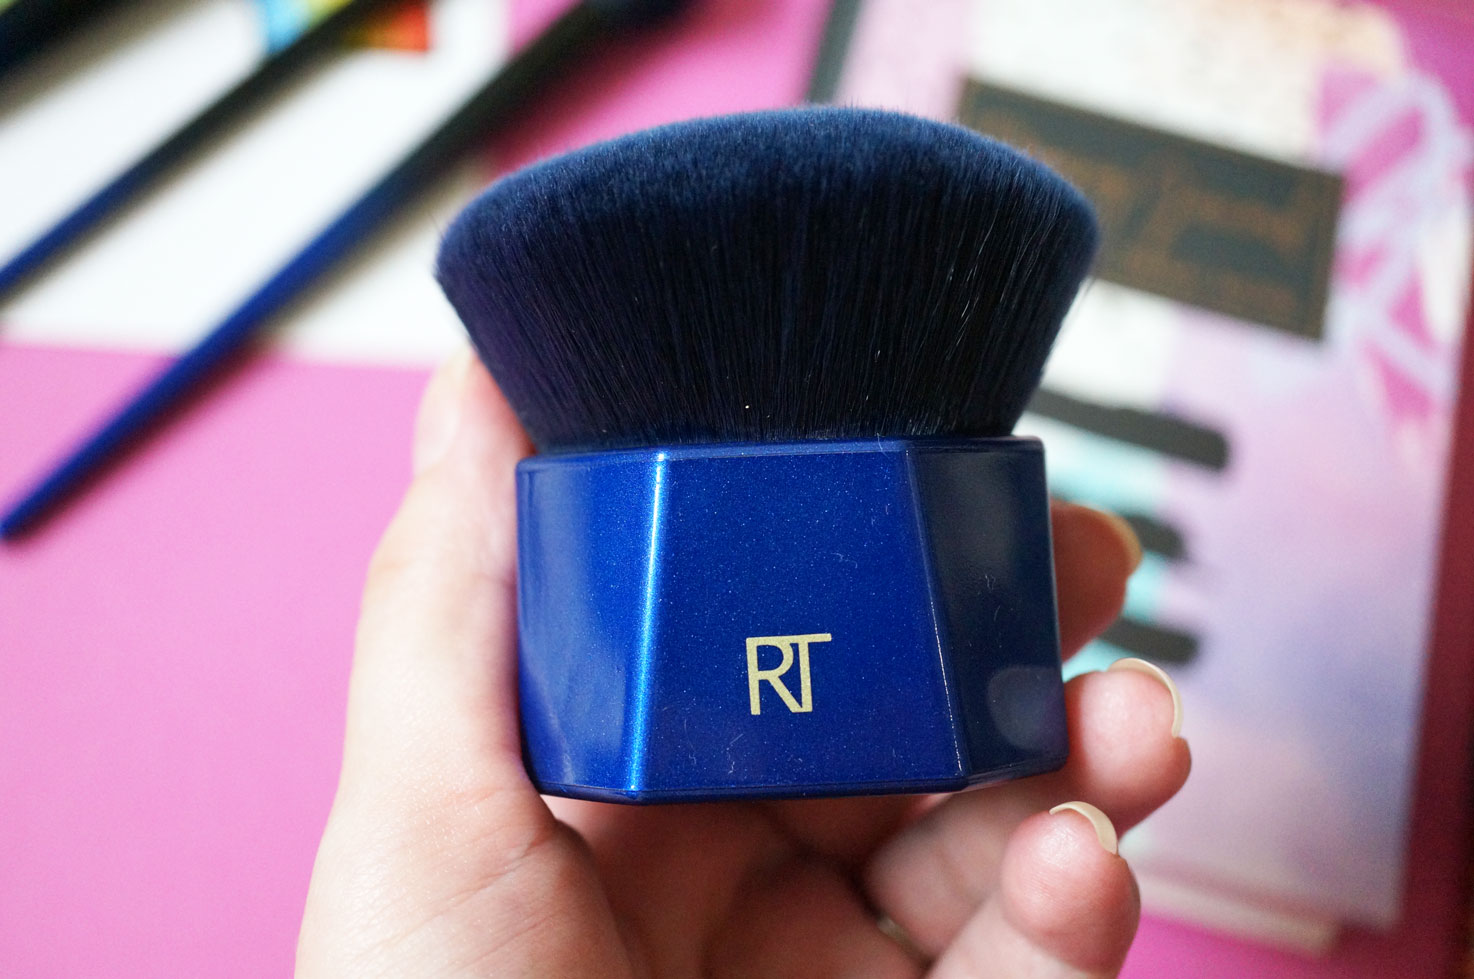 ... expensive makeup brushes. Real Techniques have re-created their own synthetic version of blue squirrel hair with their new FauxBleu™ Technology – they ...